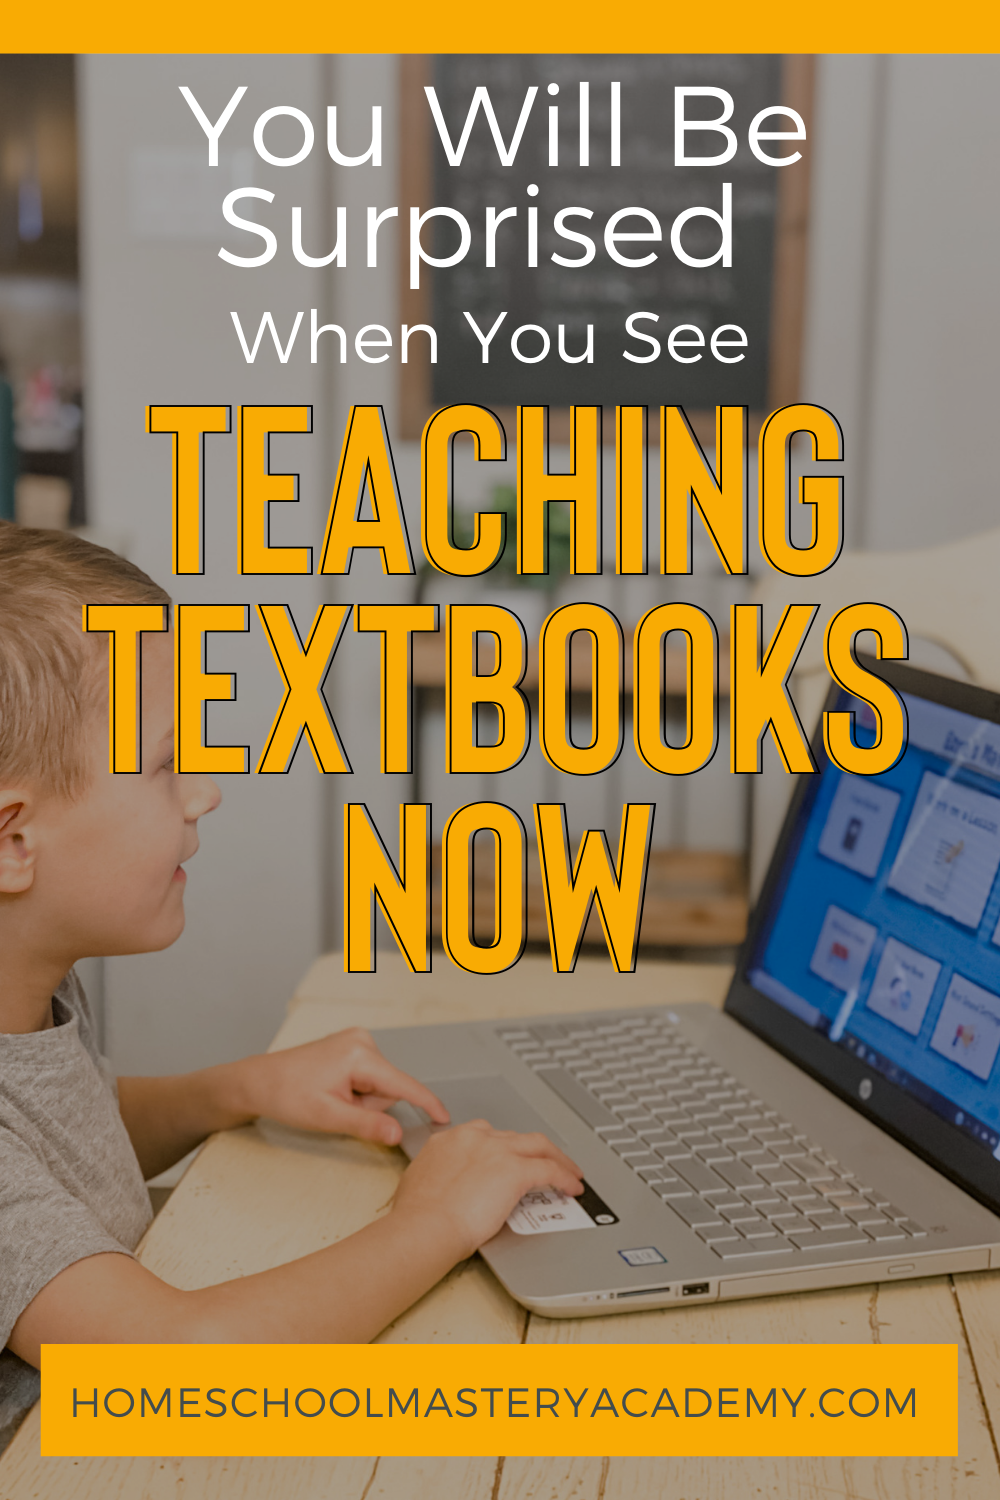 Homeschool Math Curriculum Grab a FREE Trial of Teaching Textbooks